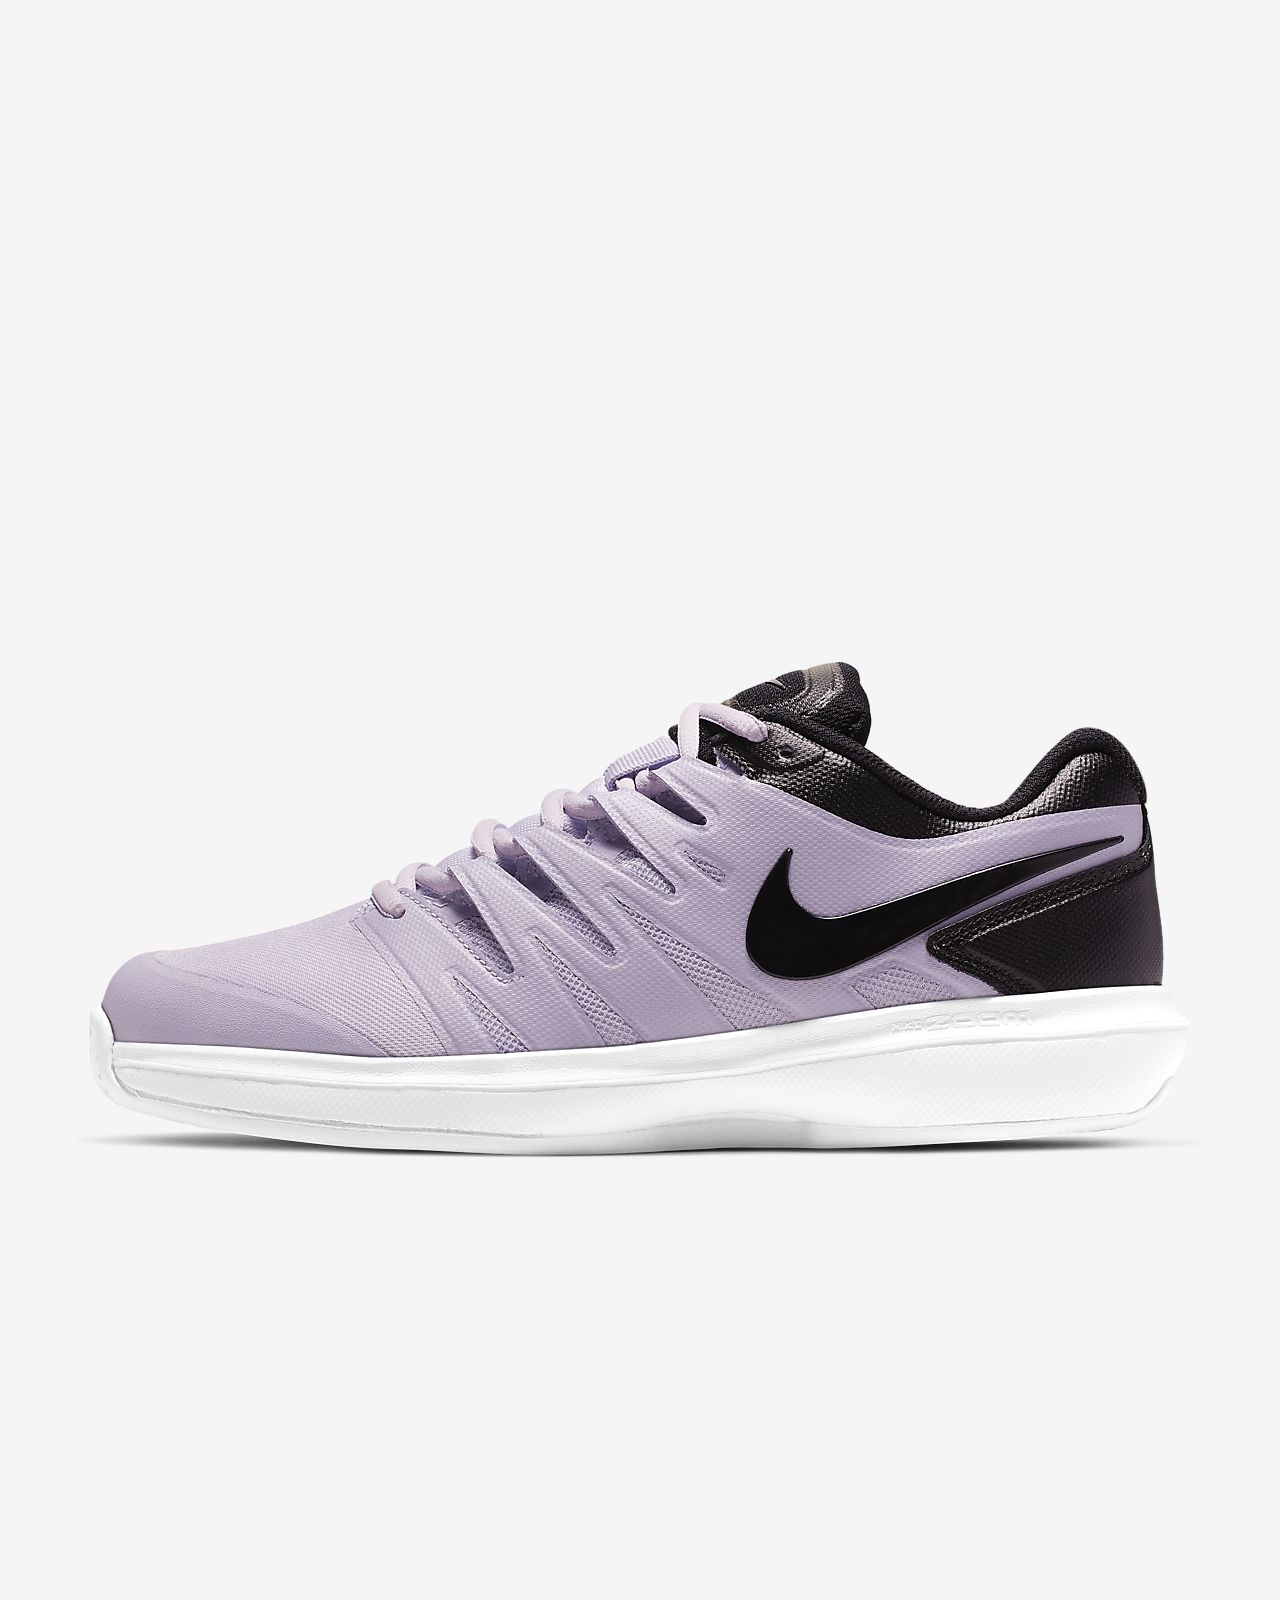 9dc61d9c31 NikeCourt Air Zoom Prestige Women's Hard Court Tennis Shoe. Nike.com GB